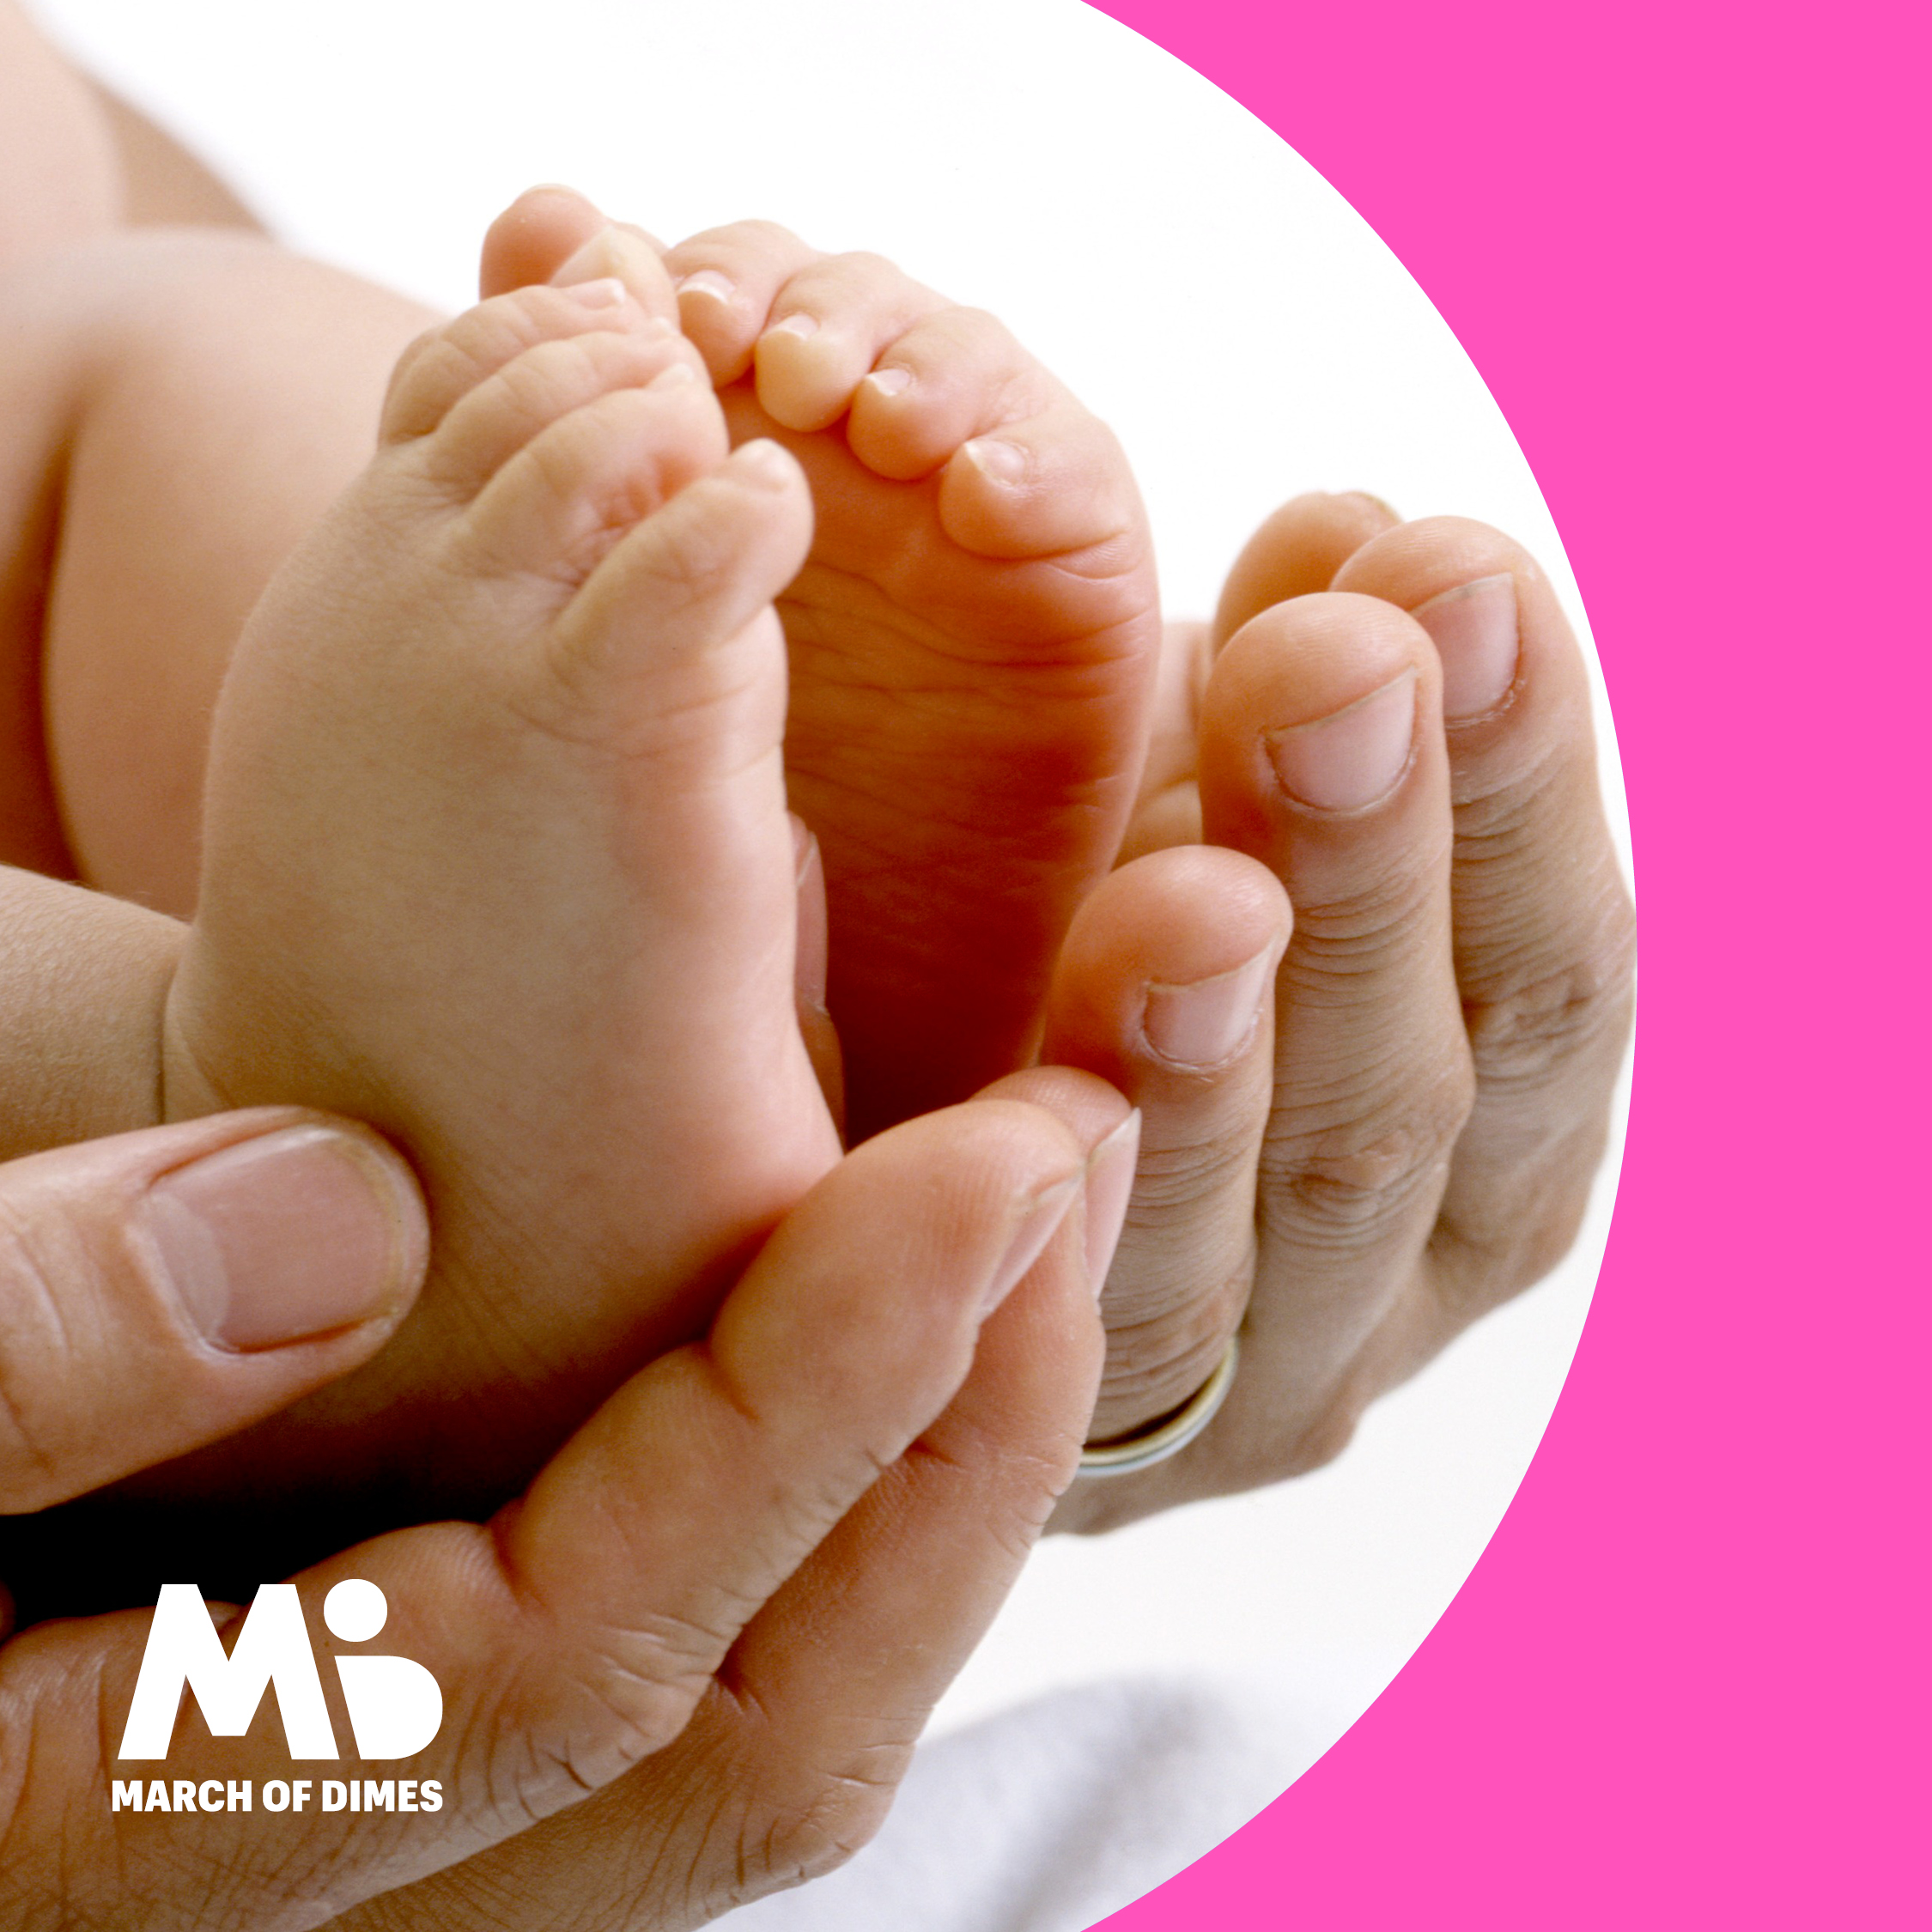 Preventing birth defects caused by isotretinoin